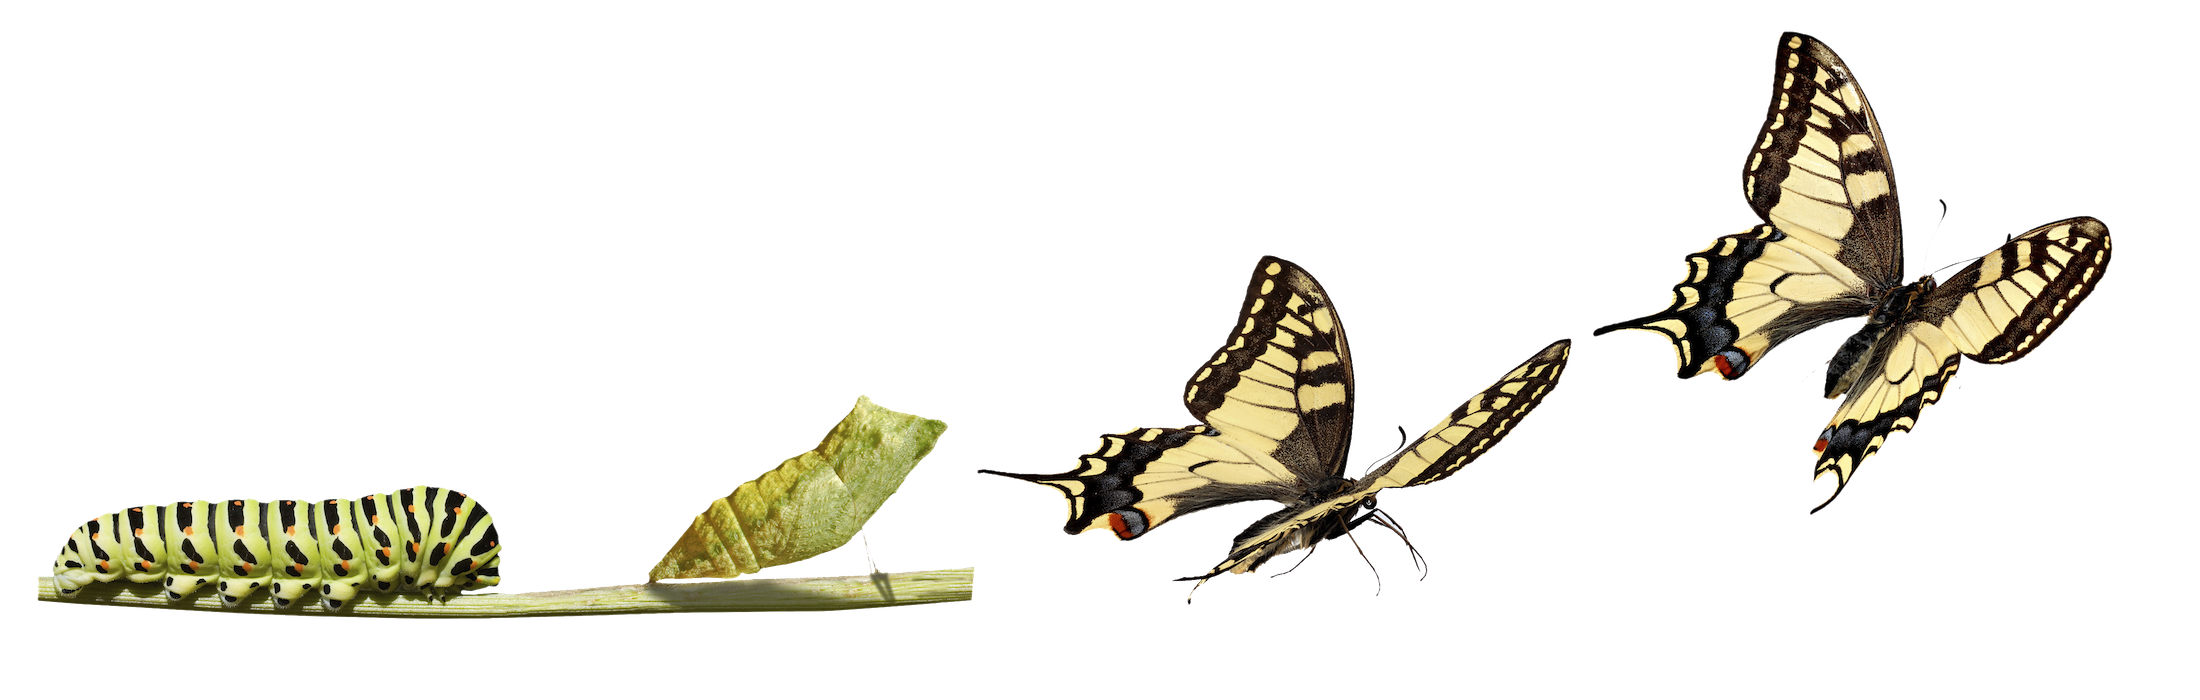 TransformationButterfly